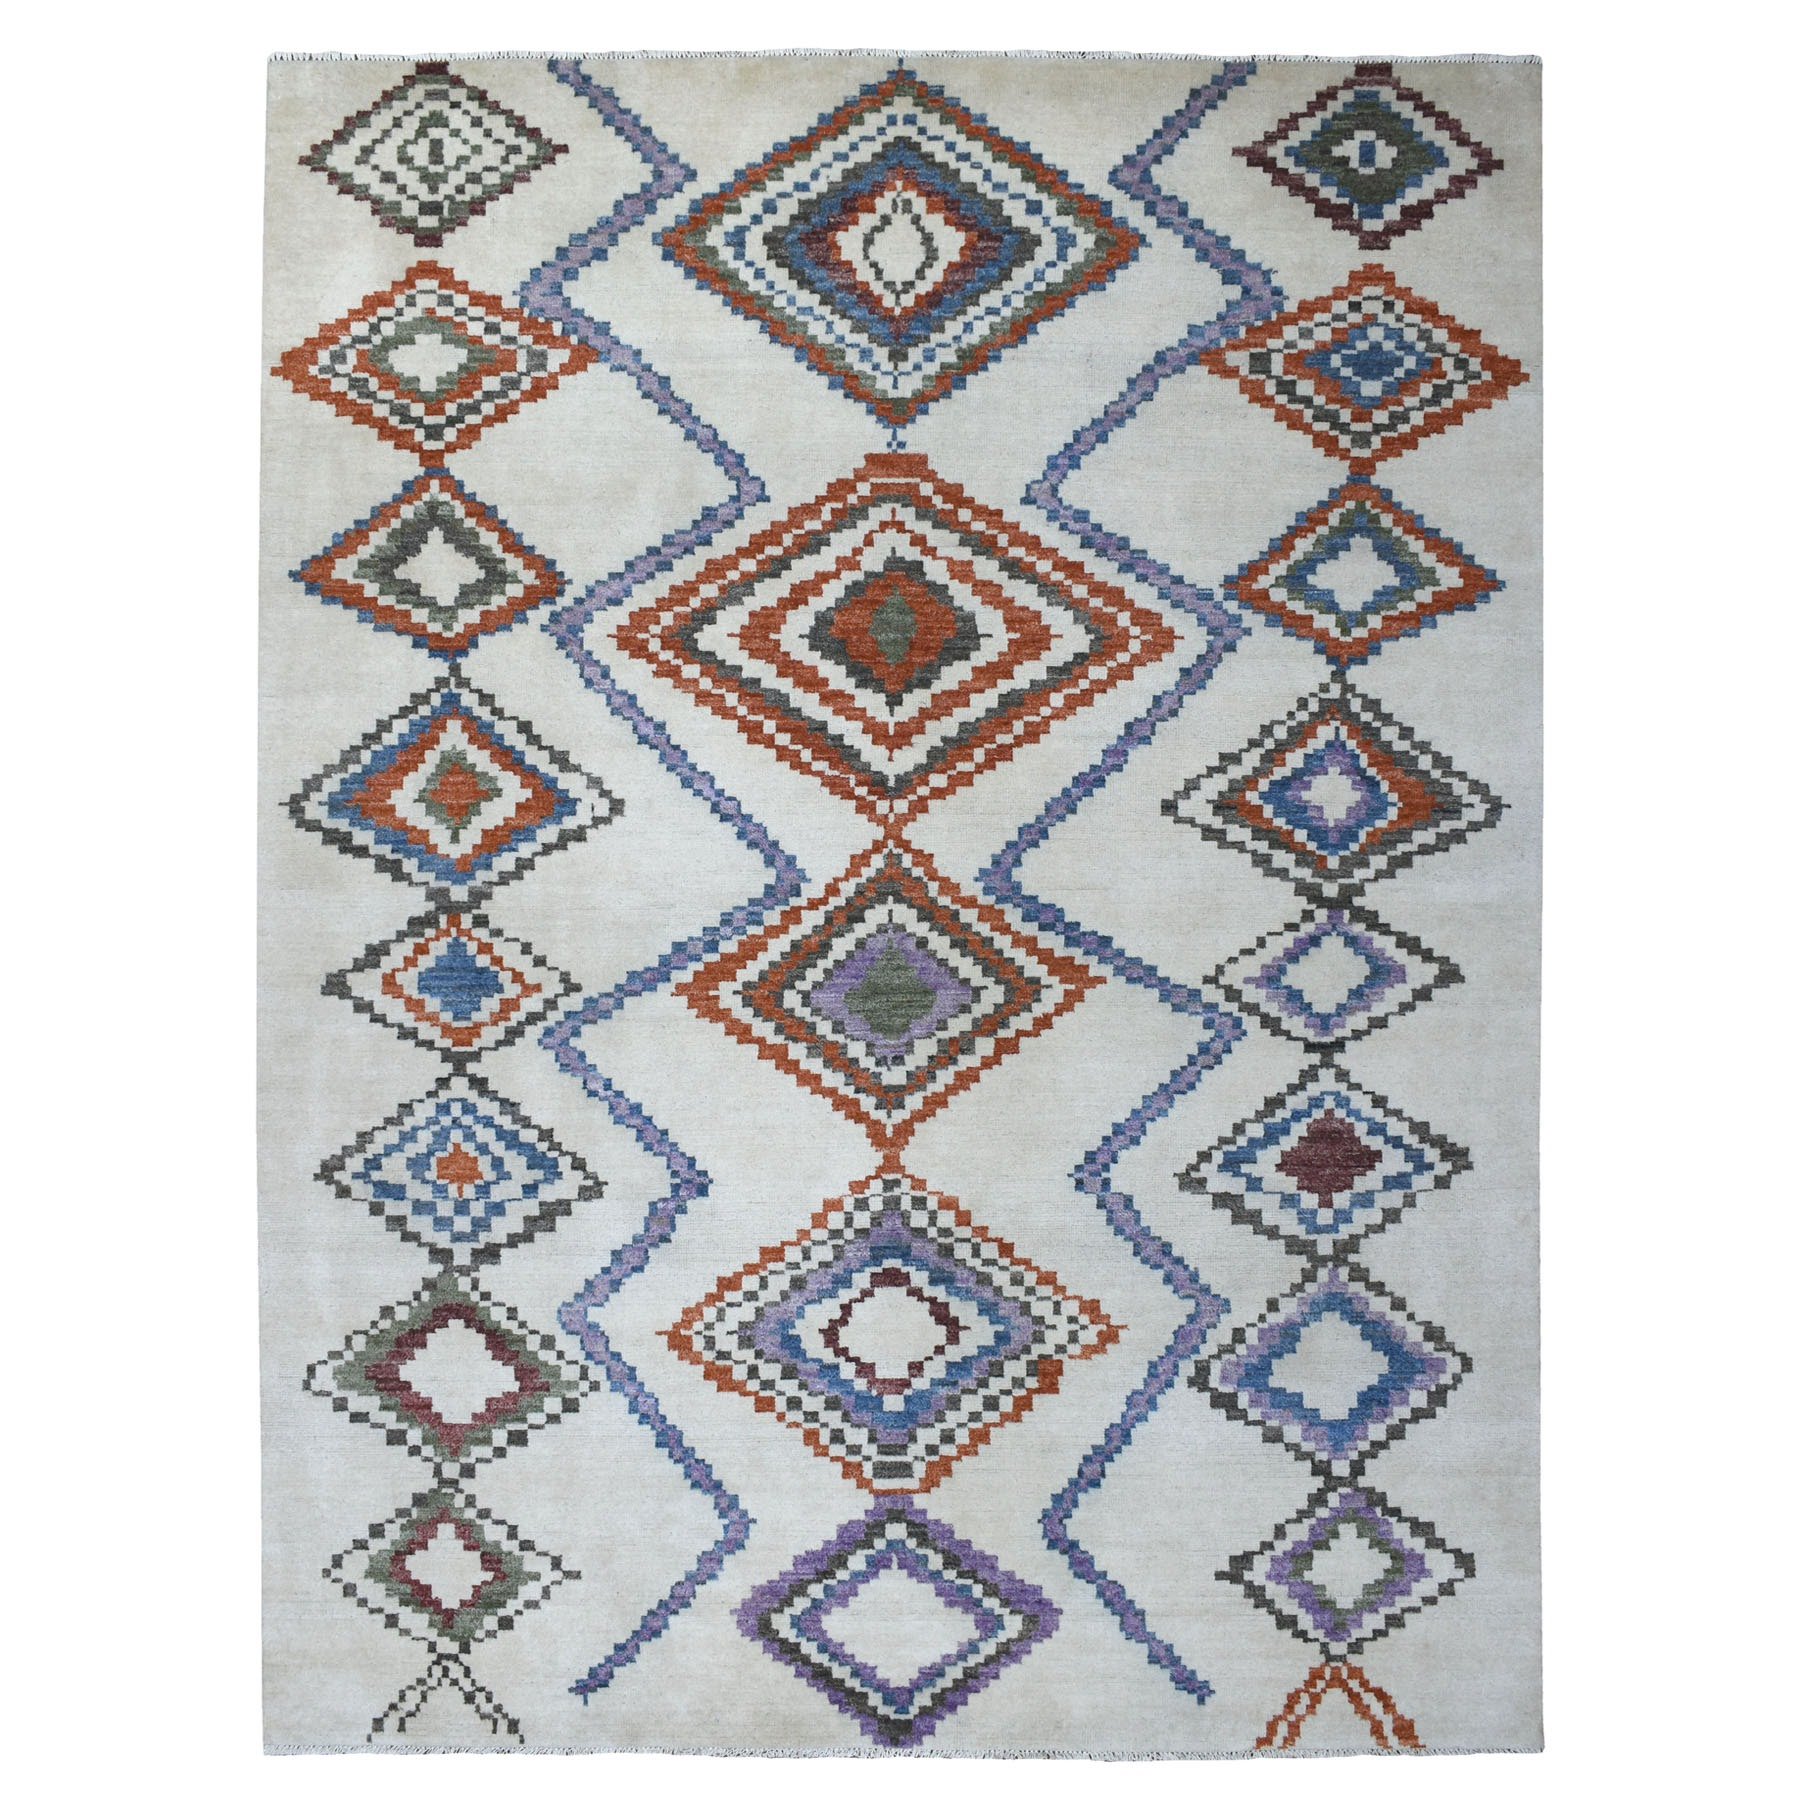 9'X12' Ivory Hand Knotted Pure Wool Thick And Plush Moroccan Berber Boujaad Design Oriental Rug moaee78e